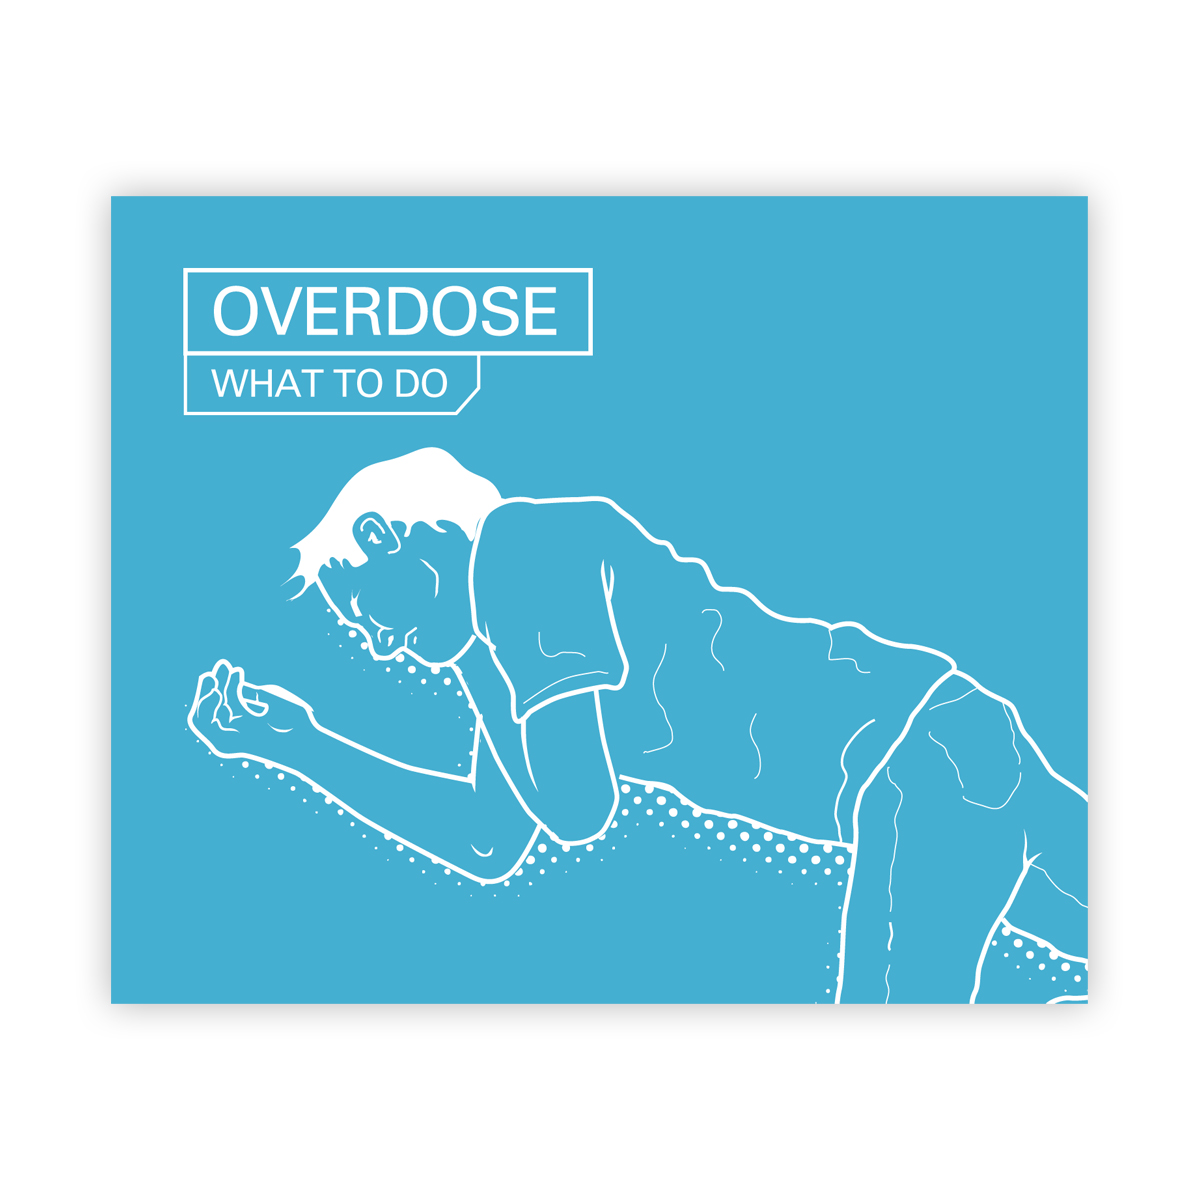 Overdose - what to do